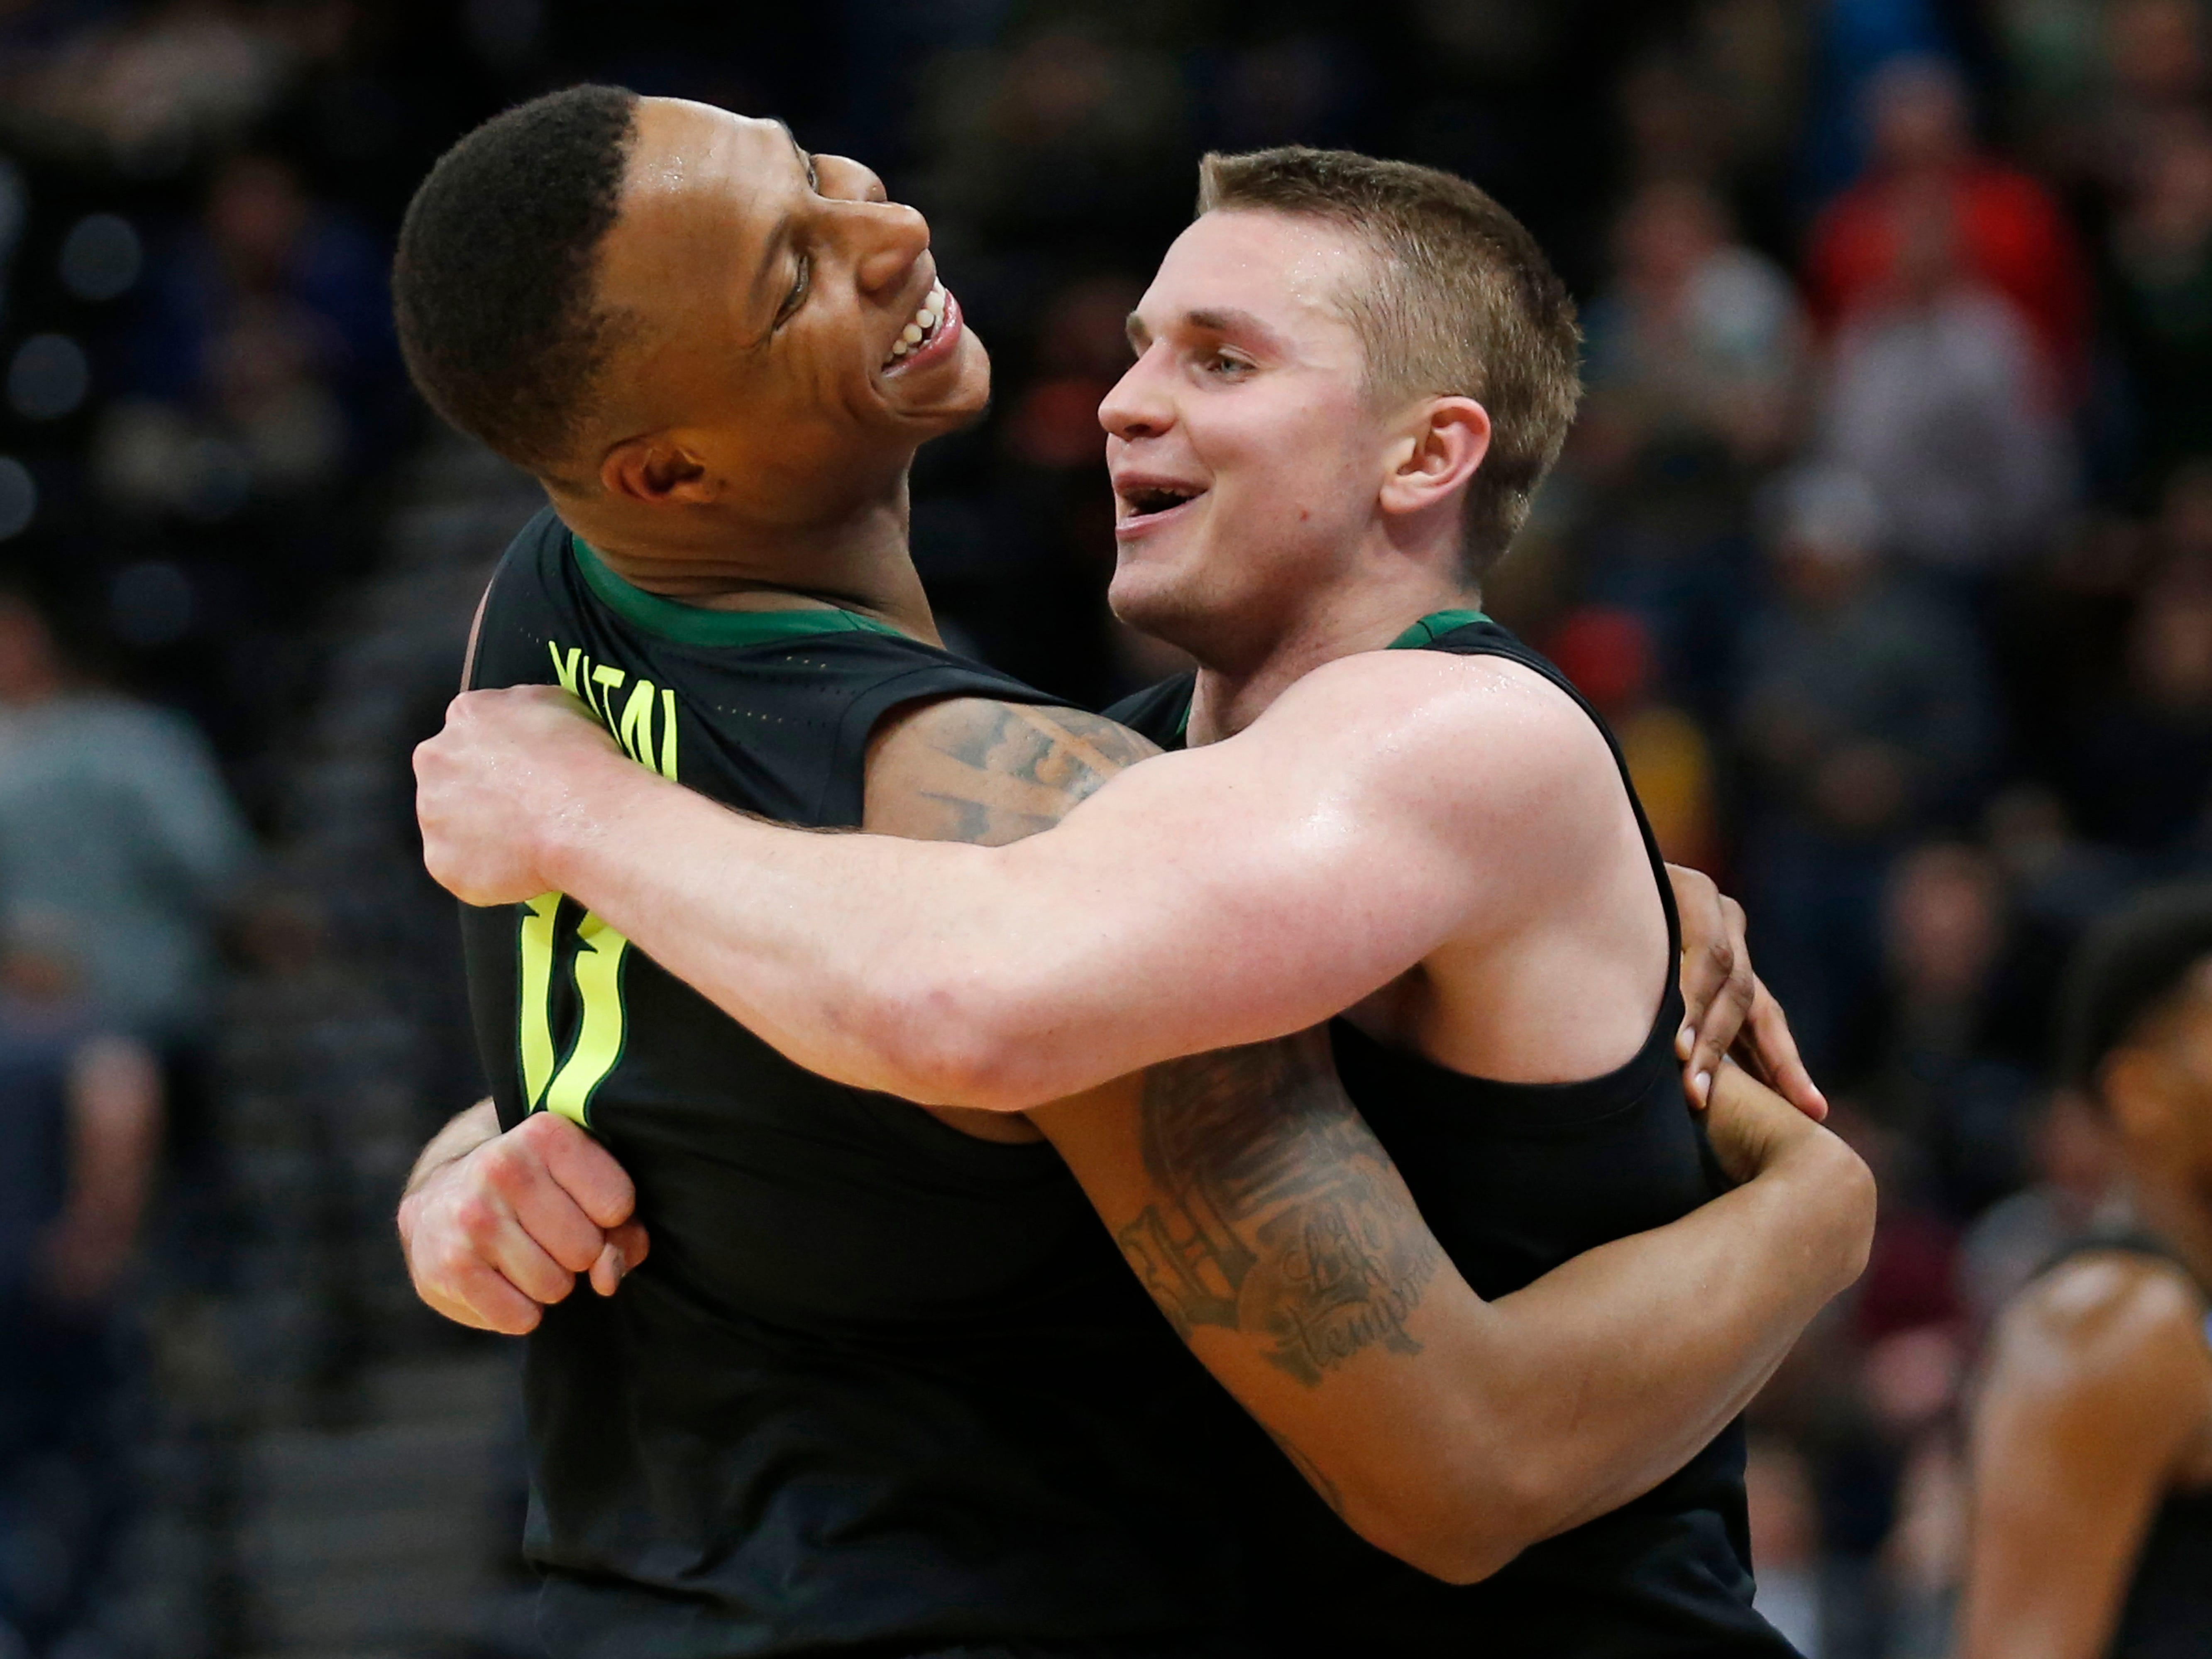 Baylor guards Makai Mason, right, and Mark Vital (11) hug following the team's 78-69 win over Syracuse in a first-round game in the NCAA men's college basketball tournament Thursday in Salt Lake City.